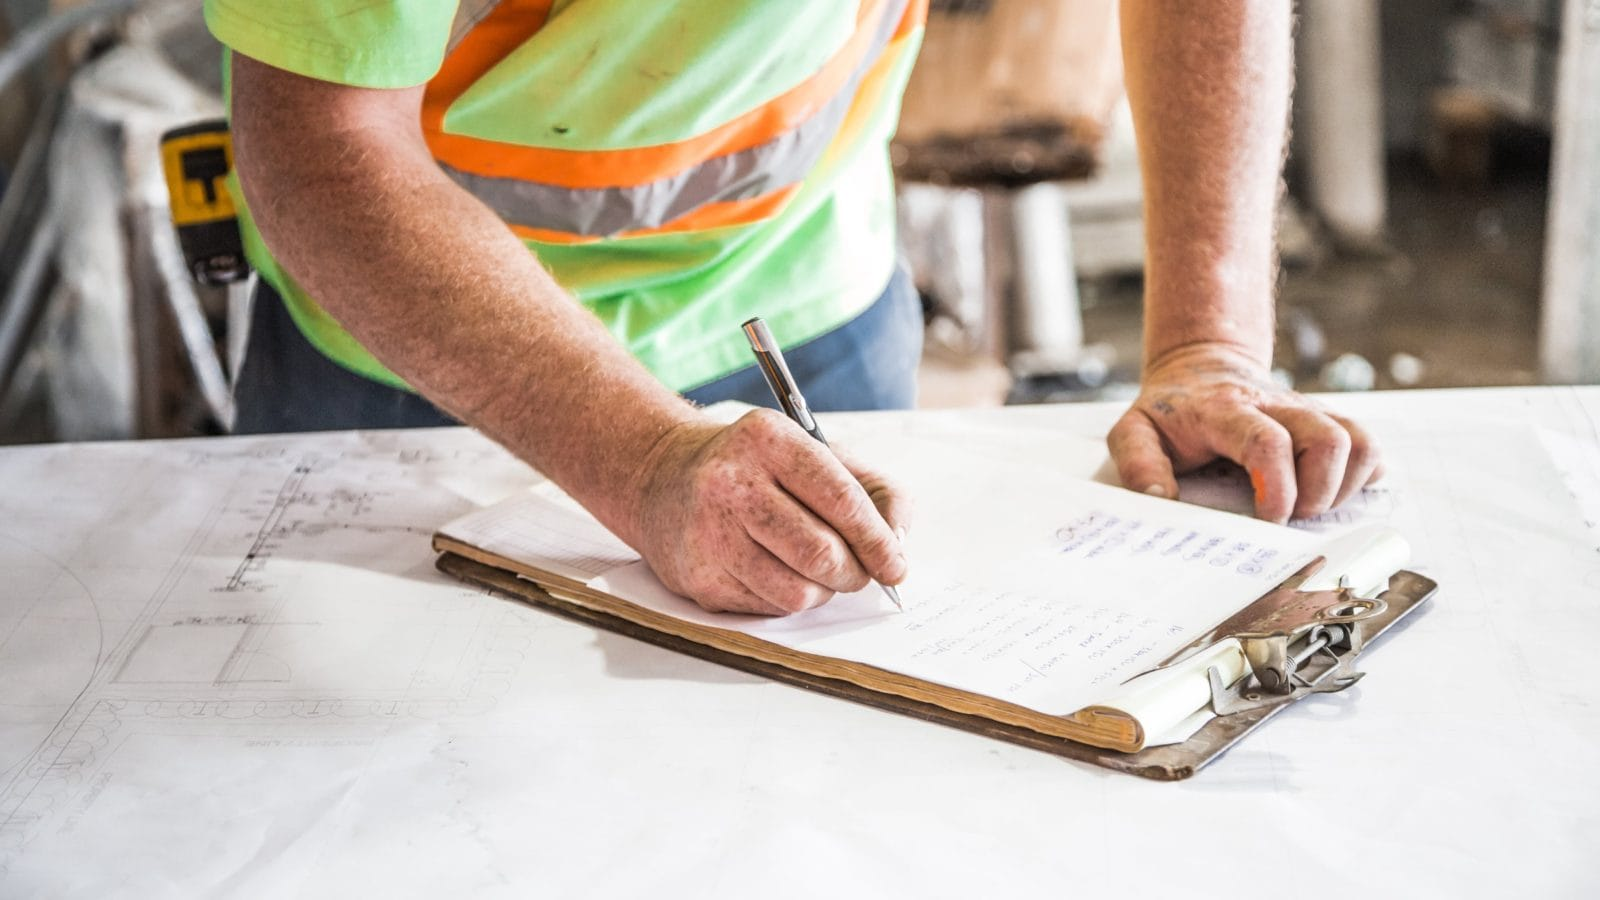 Paper timesheet to track construction employee hours